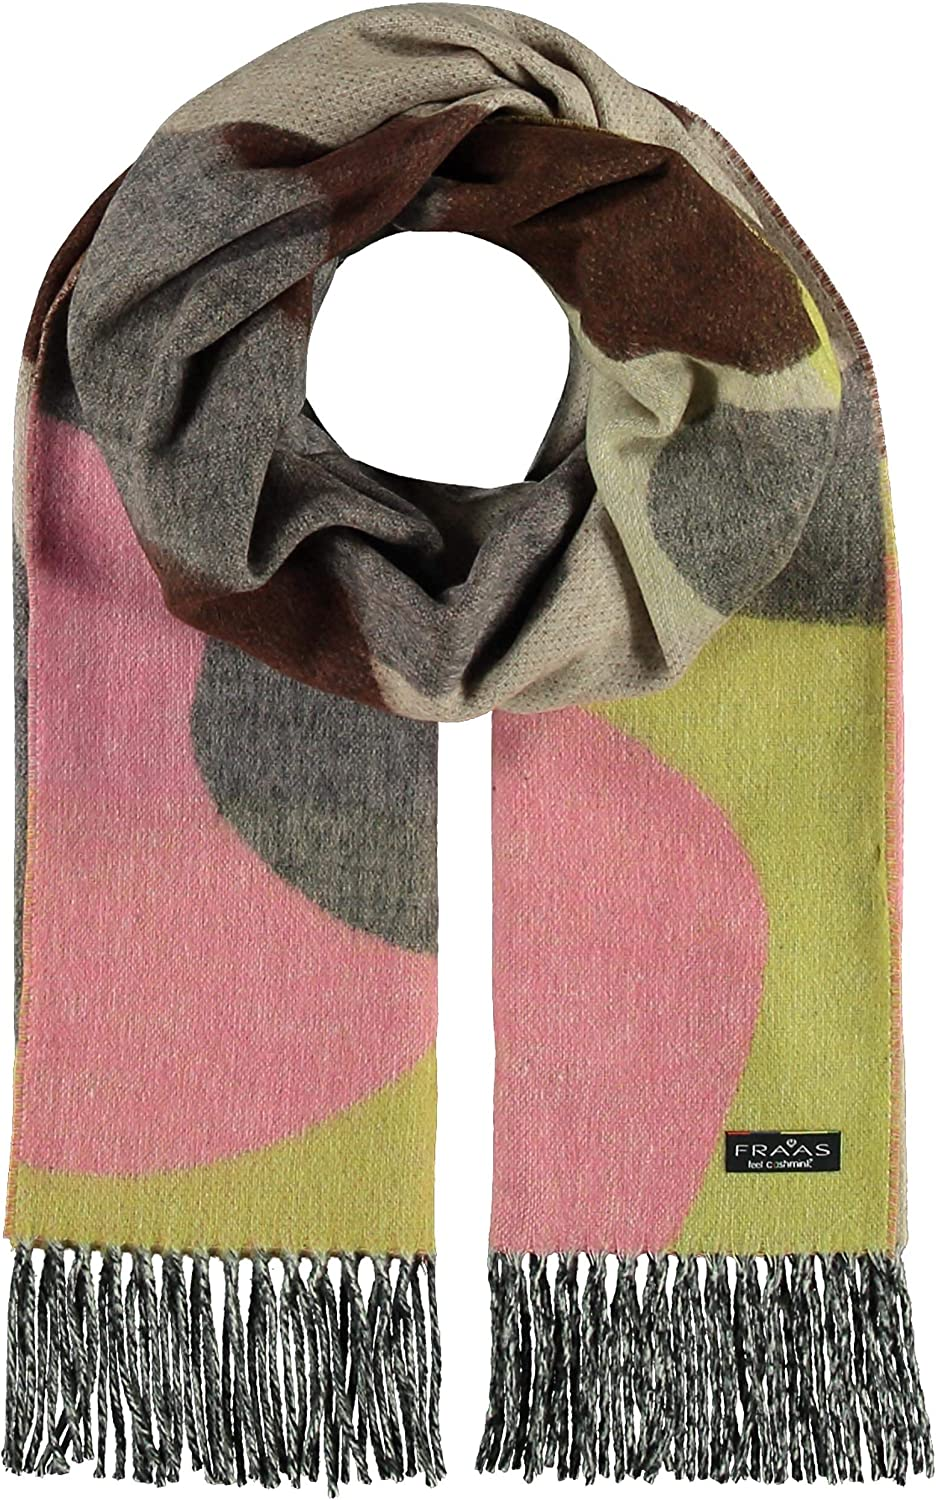 FRAAS Sustainable Edition Camo Cashmink Scarf for Men Women - Made in Germany Taupe